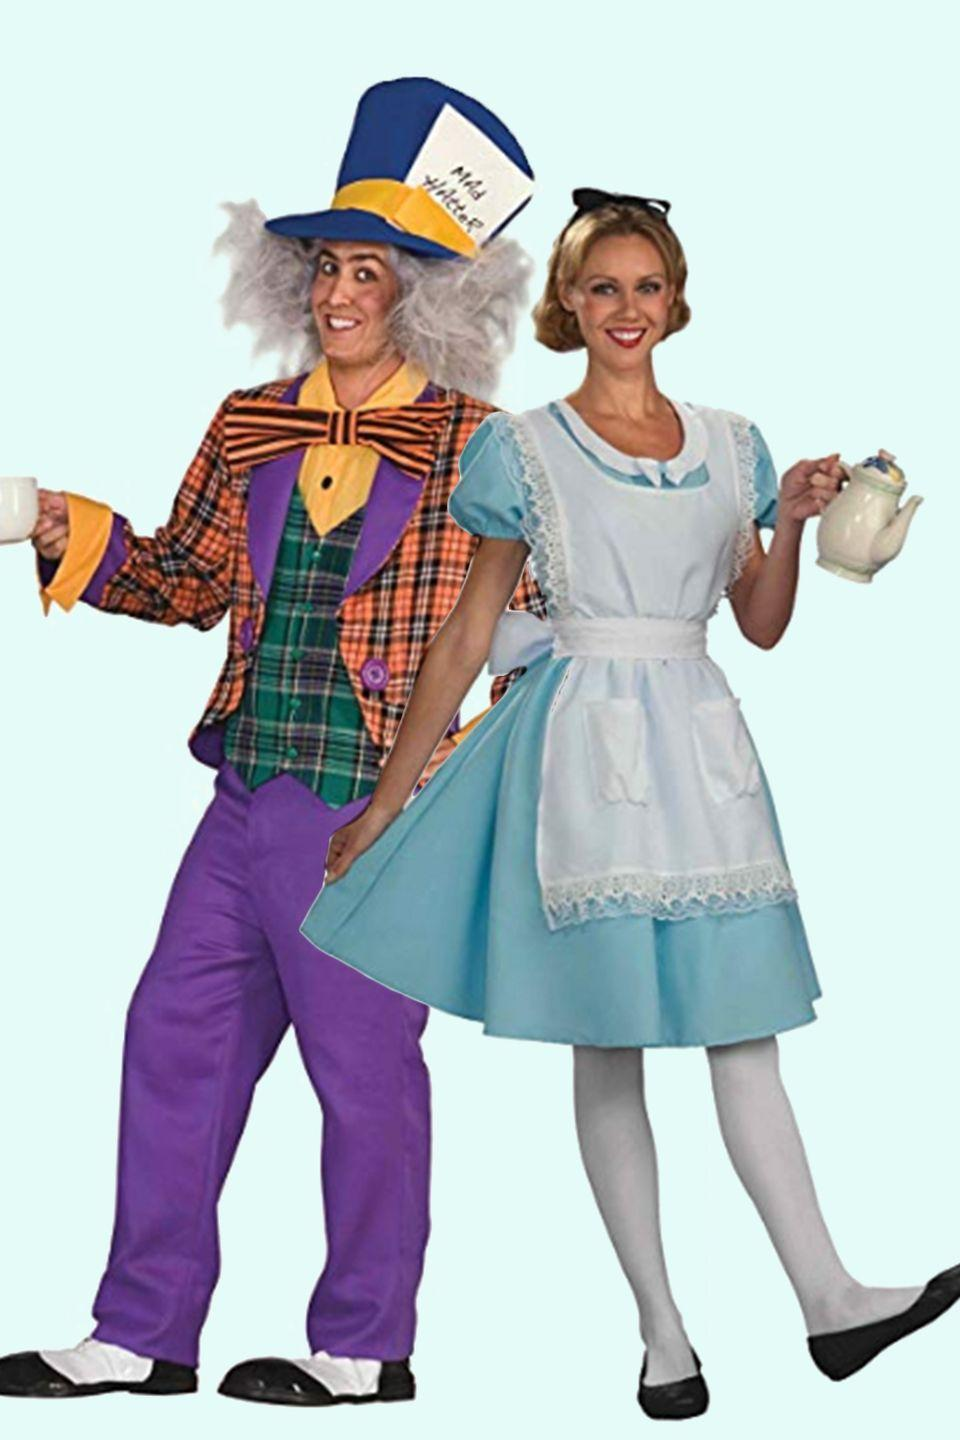 """<p>Although they aren't a couple in the story (thank goodness), these two <em><a href=""""https://www.amazon.com/Alice-Wonderland-Kathryn-Beaumont/dp/B004IQ78HA/?tag=syn-yahoo-20&ascsubtag=%5Bartid%7C10055.g.2625%5Bsrc%7Cyahoo-us"""" rel=""""nofollow noopener"""" target=""""_blank"""" data-ylk=""""slk:Alice in Wonderland"""" class=""""link rapid-noclick-resp"""">Alice in Wonderland</a> </em>characters make a fun and instantly recognizable pair.</p><p><a class=""""link rapid-noclick-resp"""" href=""""https://www.amazon.com/Forum-Alice-Wonderland-Costume-Standard/dp/B004RHNENW?th=1&psc=1&tag=syn-yahoo-20&ascsubtag=%5Bartid%7C10055.g.2625%5Bsrc%7Cyahoo-us"""" rel=""""nofollow noopener"""" target=""""_blank"""" data-ylk=""""slk:SHOP ALICE COSTUME"""">SHOP ALICE COSTUME</a></p><p> <a class=""""link rapid-noclick-resp"""" href=""""https://www.amazon.com/Forum-Wonderland-Hatter-Costume-Purple/dp/B003IBT7AM/ref=sr_1_33_sspa?s=toys-and-games&ie=UTF8&qid=1535571685&sr=1-33-spons&keywords=MAD+HATTER+HAT&psc=1&tag=syn-yahoo-20&ascsubtag=%5Bartid%7C10055.g.2625%5Bsrc%7Cyahoo-us"""" rel=""""nofollow noopener"""" target=""""_blank"""" data-ylk=""""slk:SHOP MAD HATTER COSTUME"""">SHOP MAD HATTER COSTUME</a></p>"""